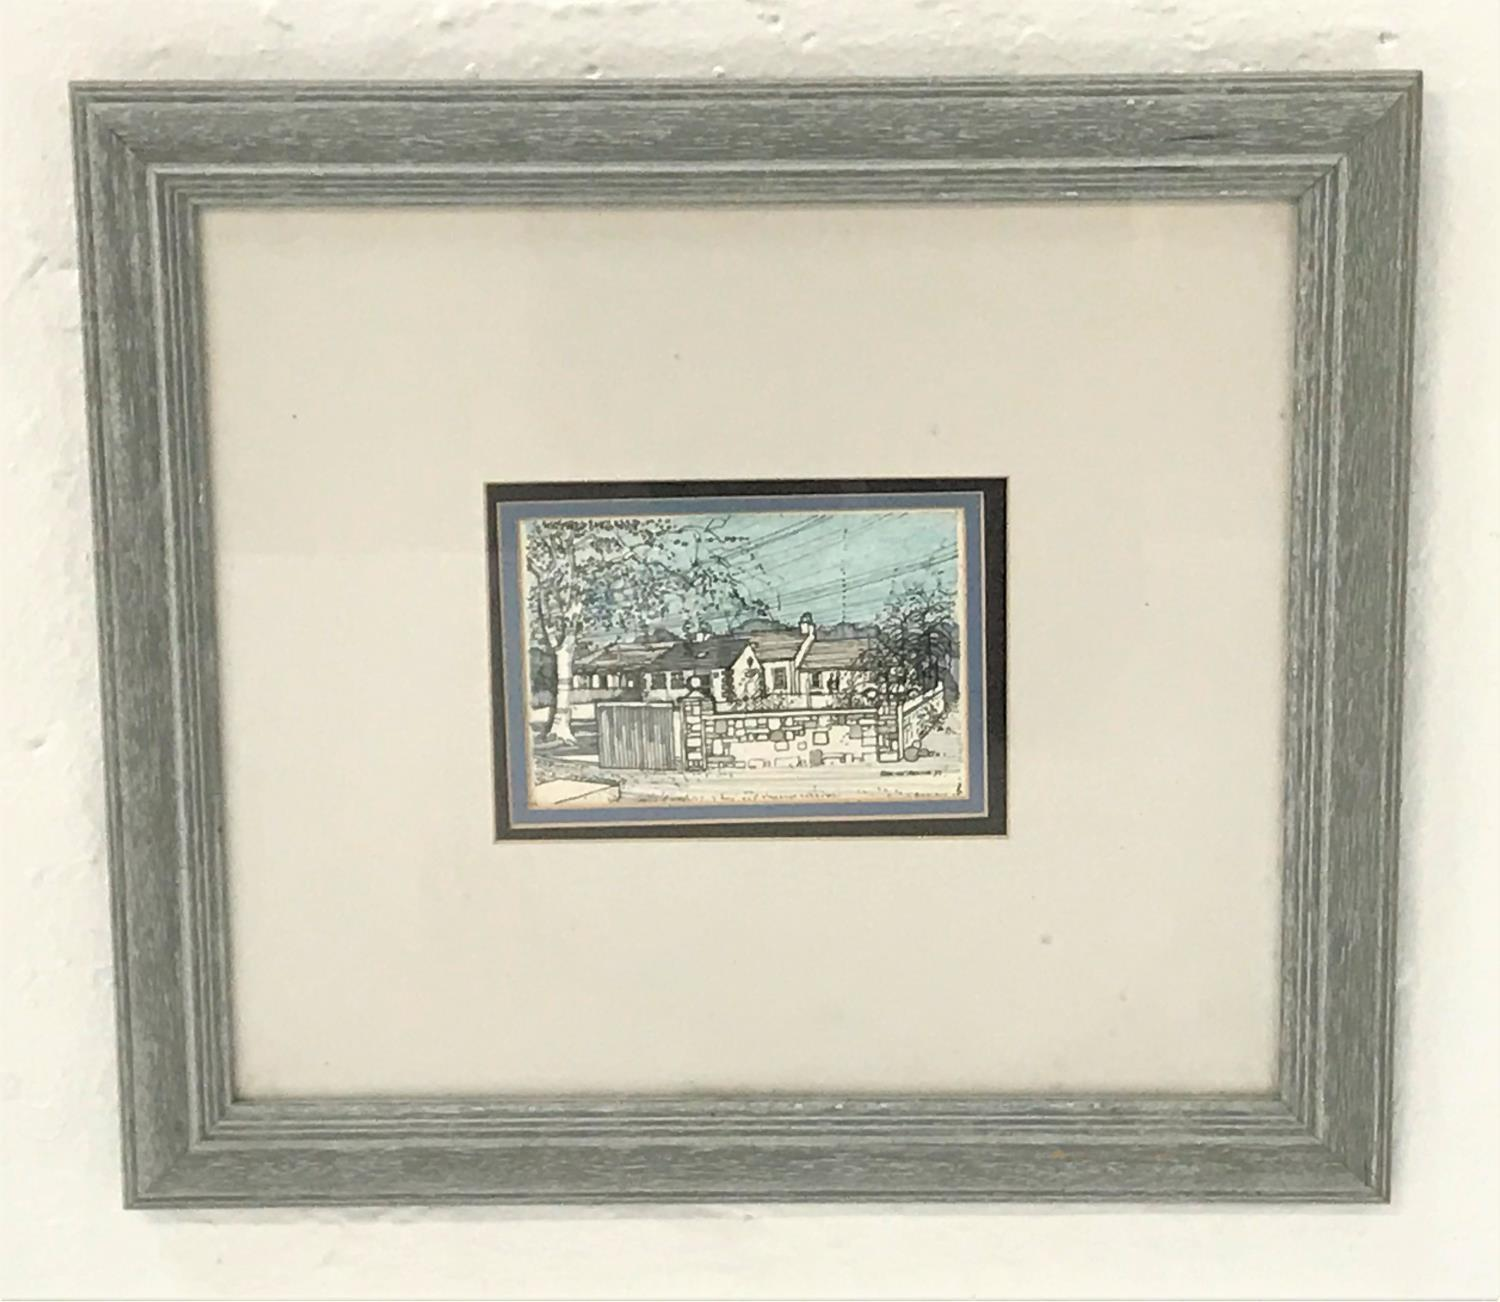 Lot 398 - ALAN McDONALD Langside, Fenwick Ayrshire, watercolour and pen, signed and dated '93, 10cm x 15cm